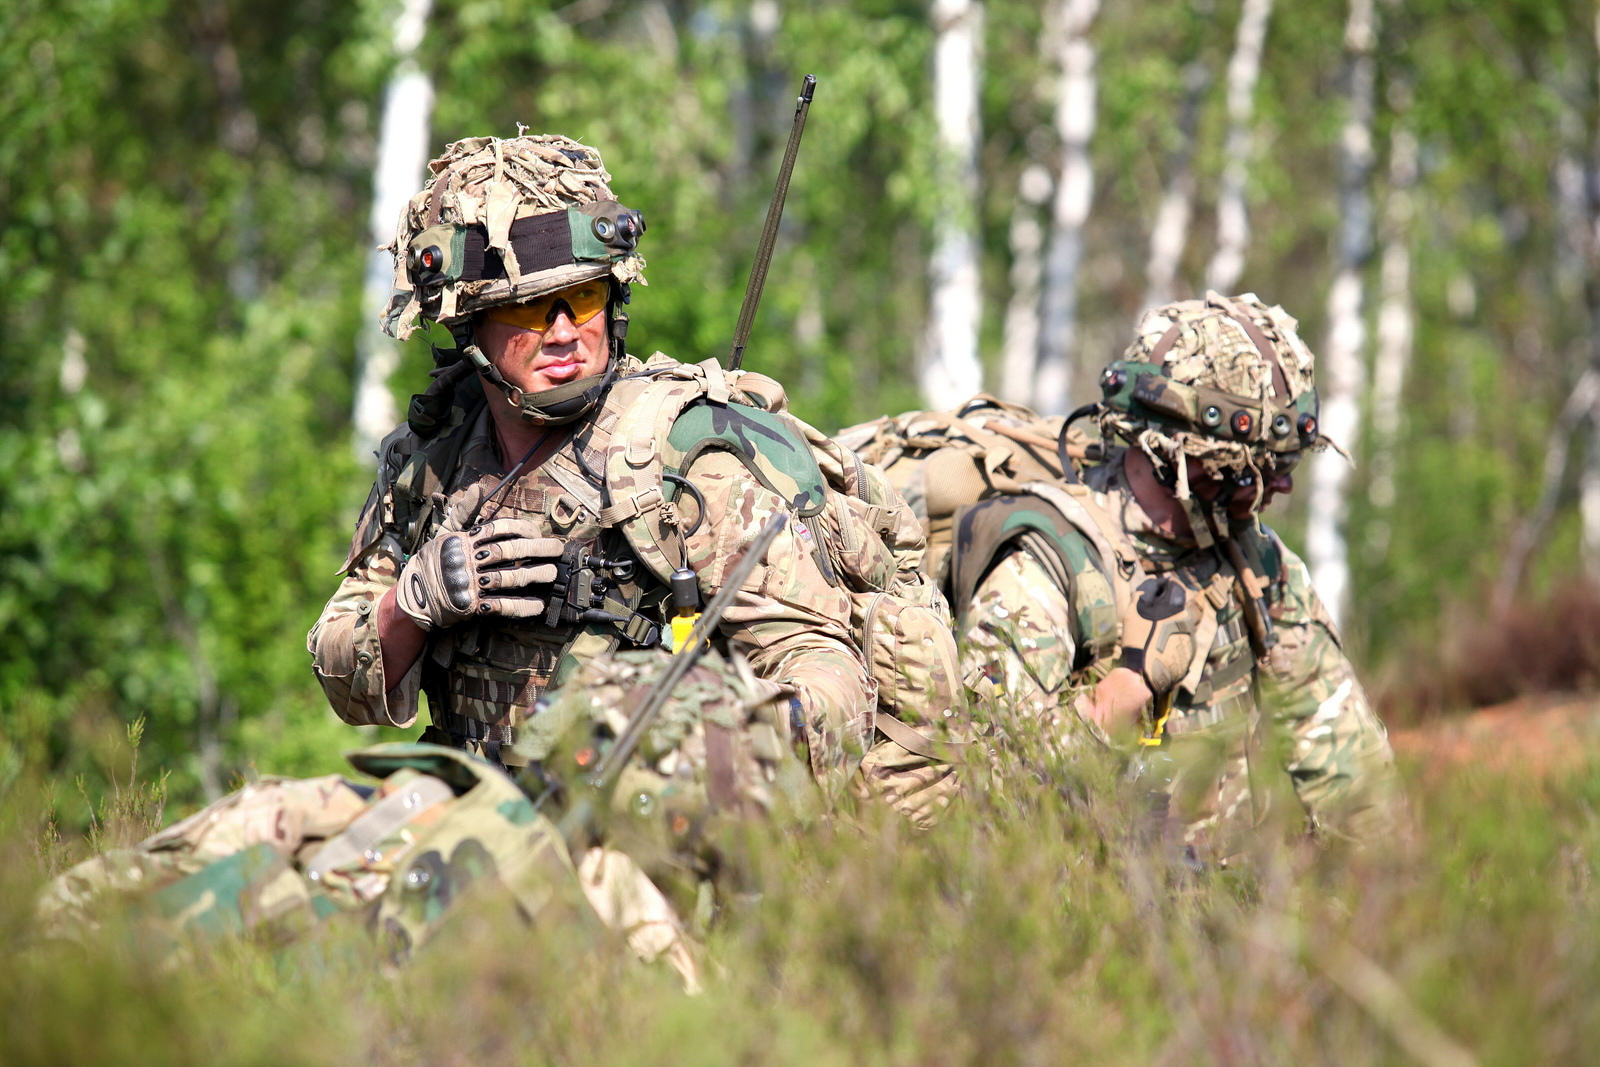 SAS Soldiers Injured In Britains Secret War With ISIS British soldiers relay information during a simulated attack as part of exercise Saber Strike 2013 in Adazi Latvia June 6 2013 130606 O ZZ999 006